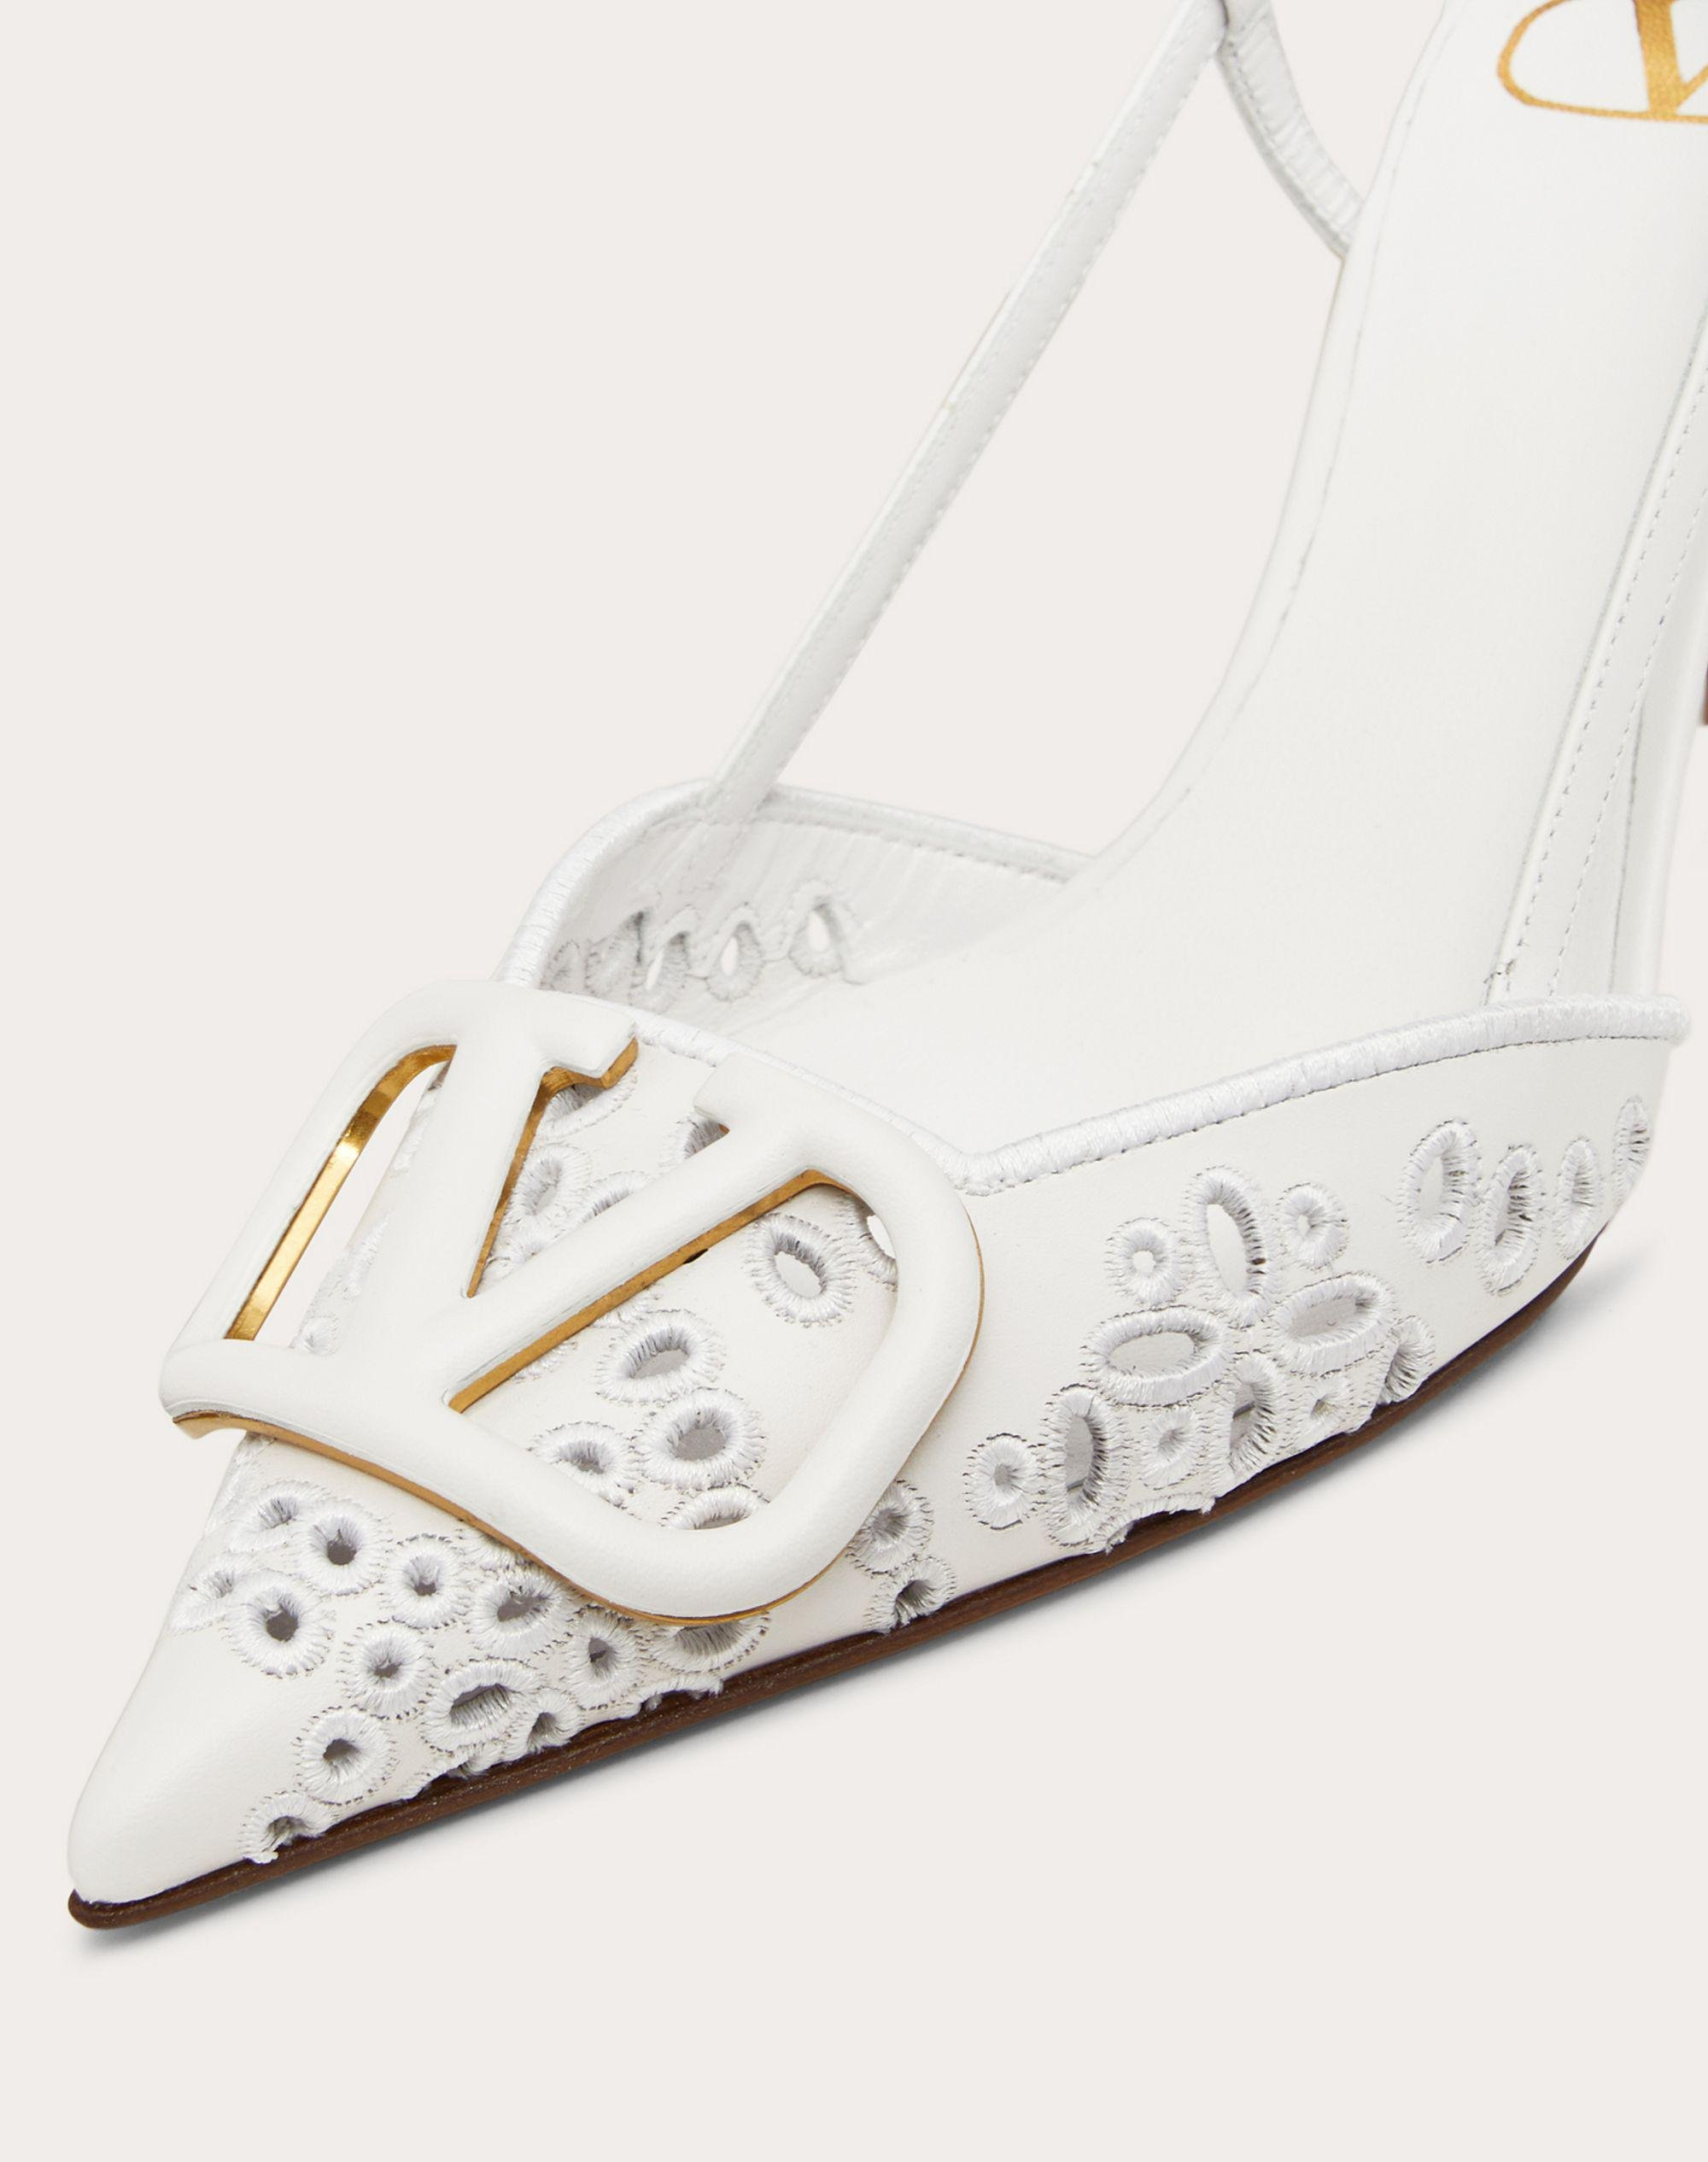 VLOGO SIGNATURE CALFSKIN SLINGBACK PUMP WITH SAN GALLO EMBROIDERY 80 MM 4